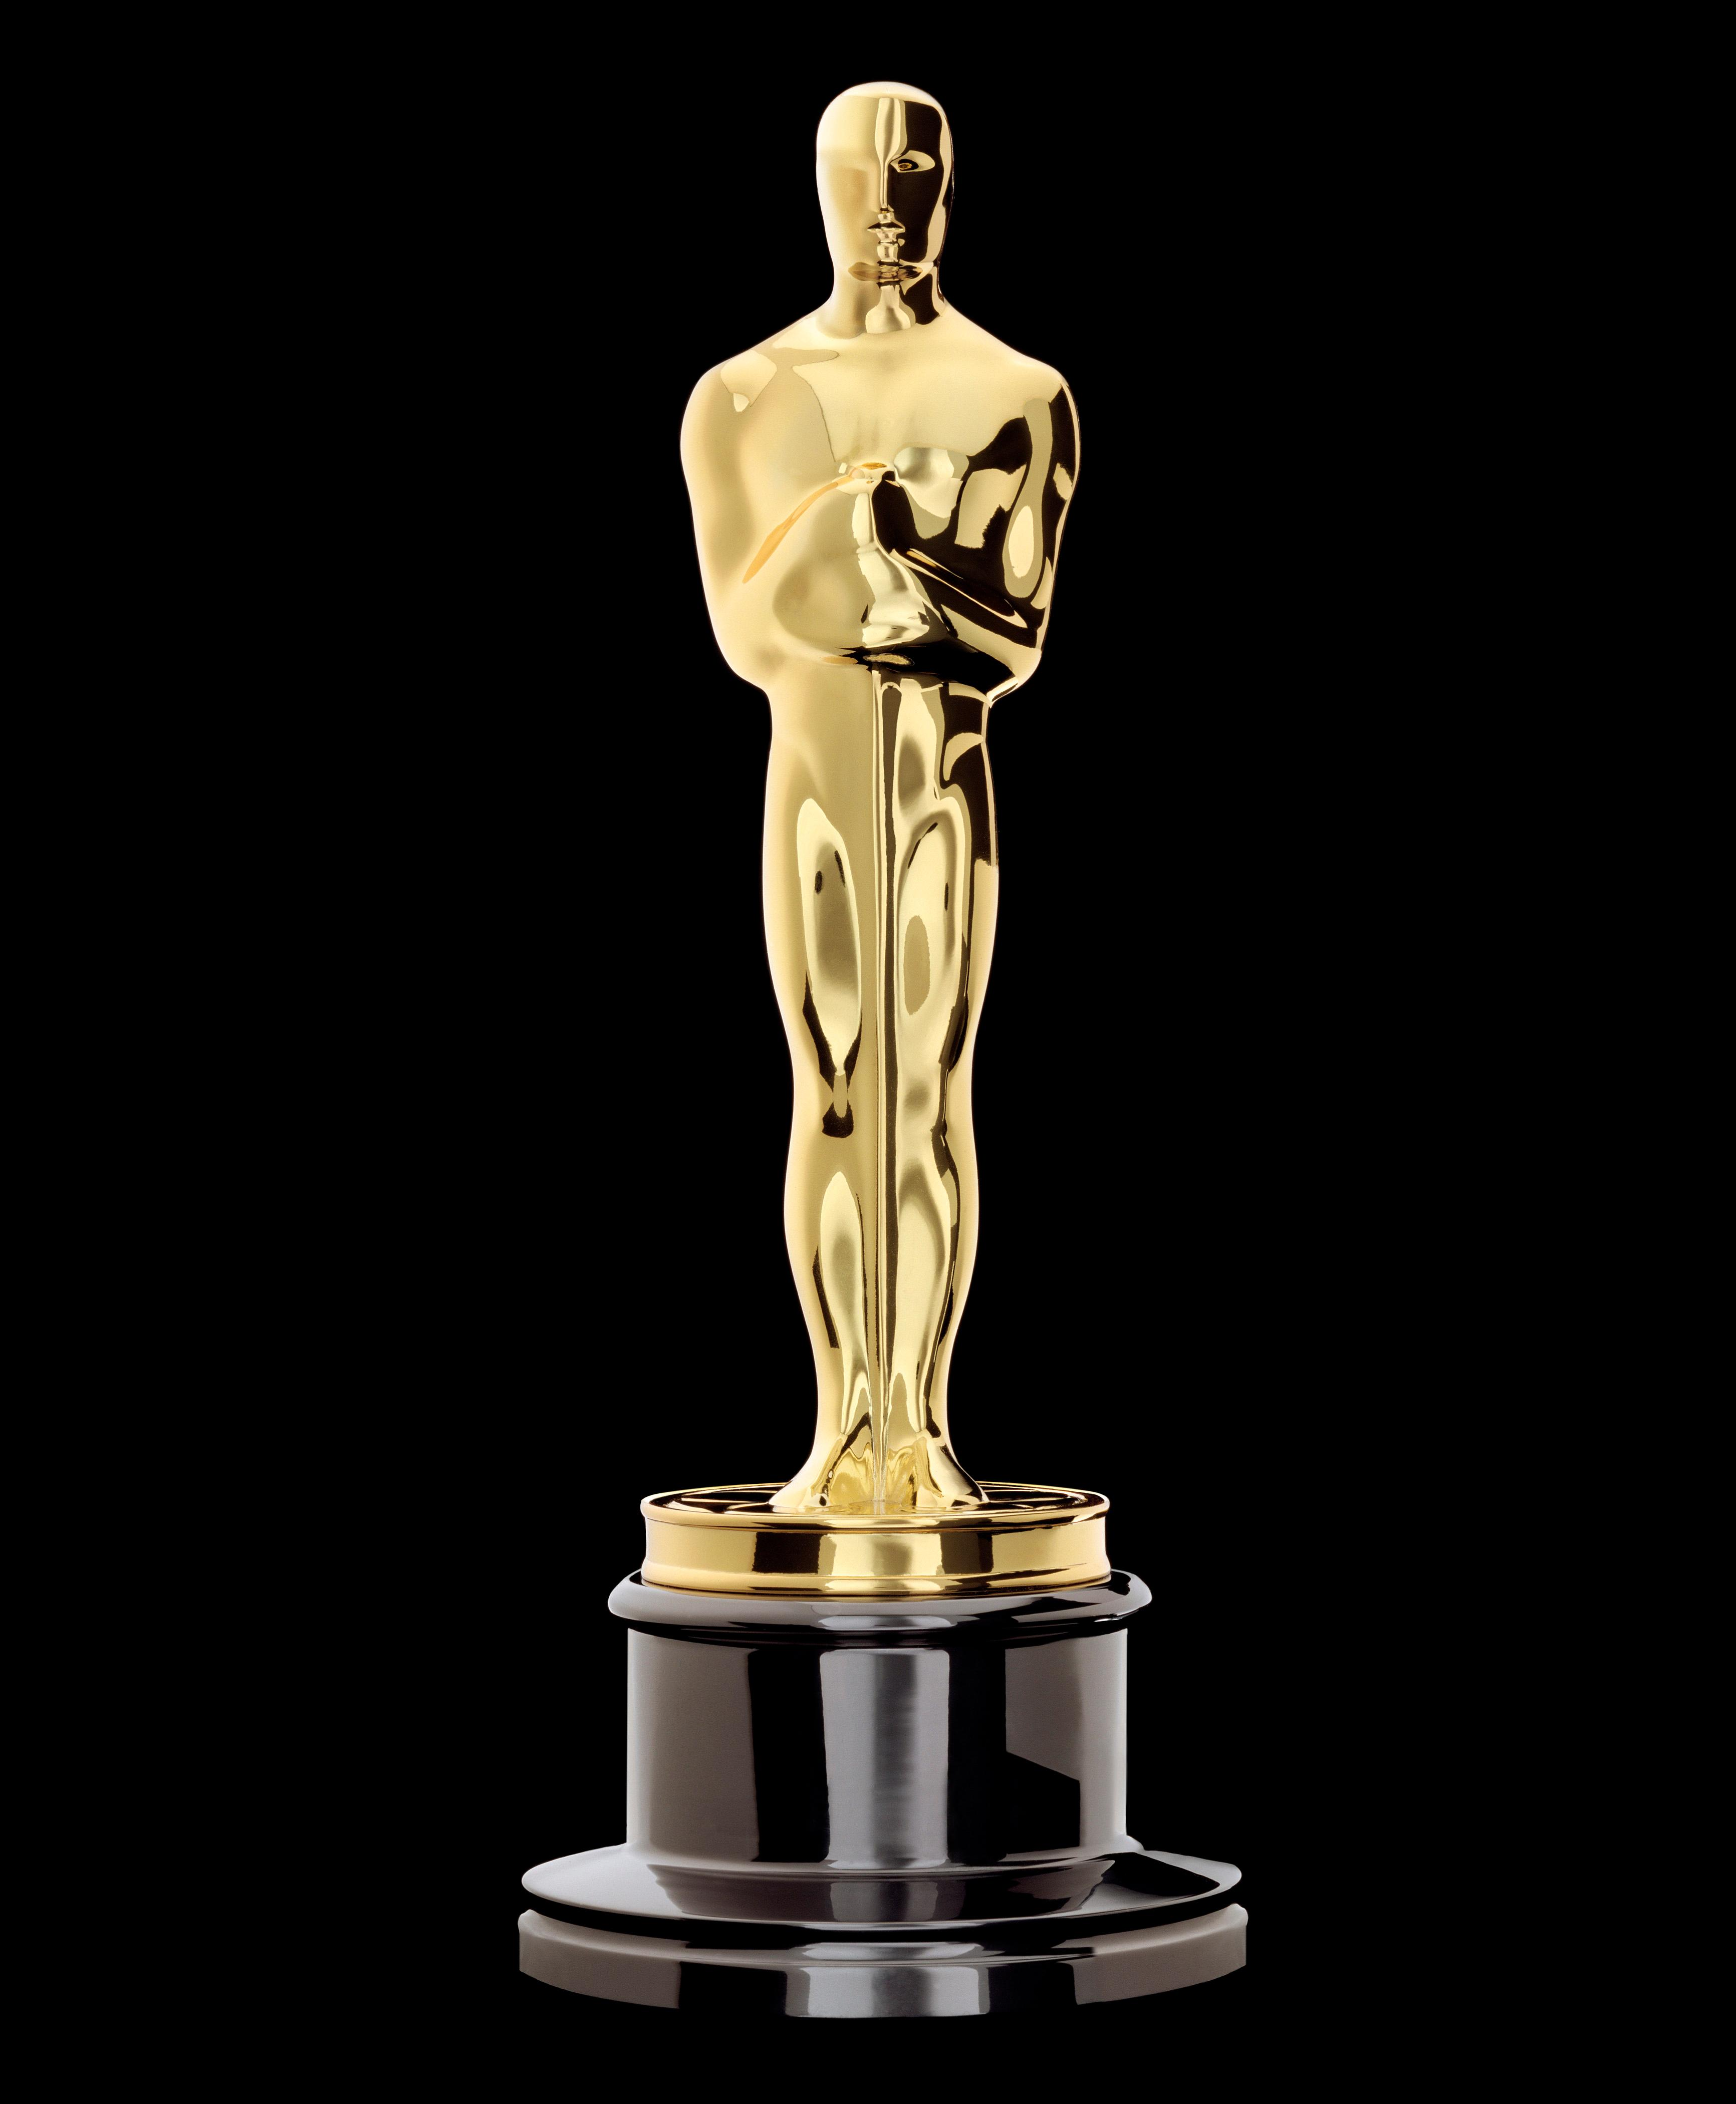 Trofeu oscar clipart svg freeuse stock Oscar Statue Png, png collections at sccpre.cat svg freeuse stock